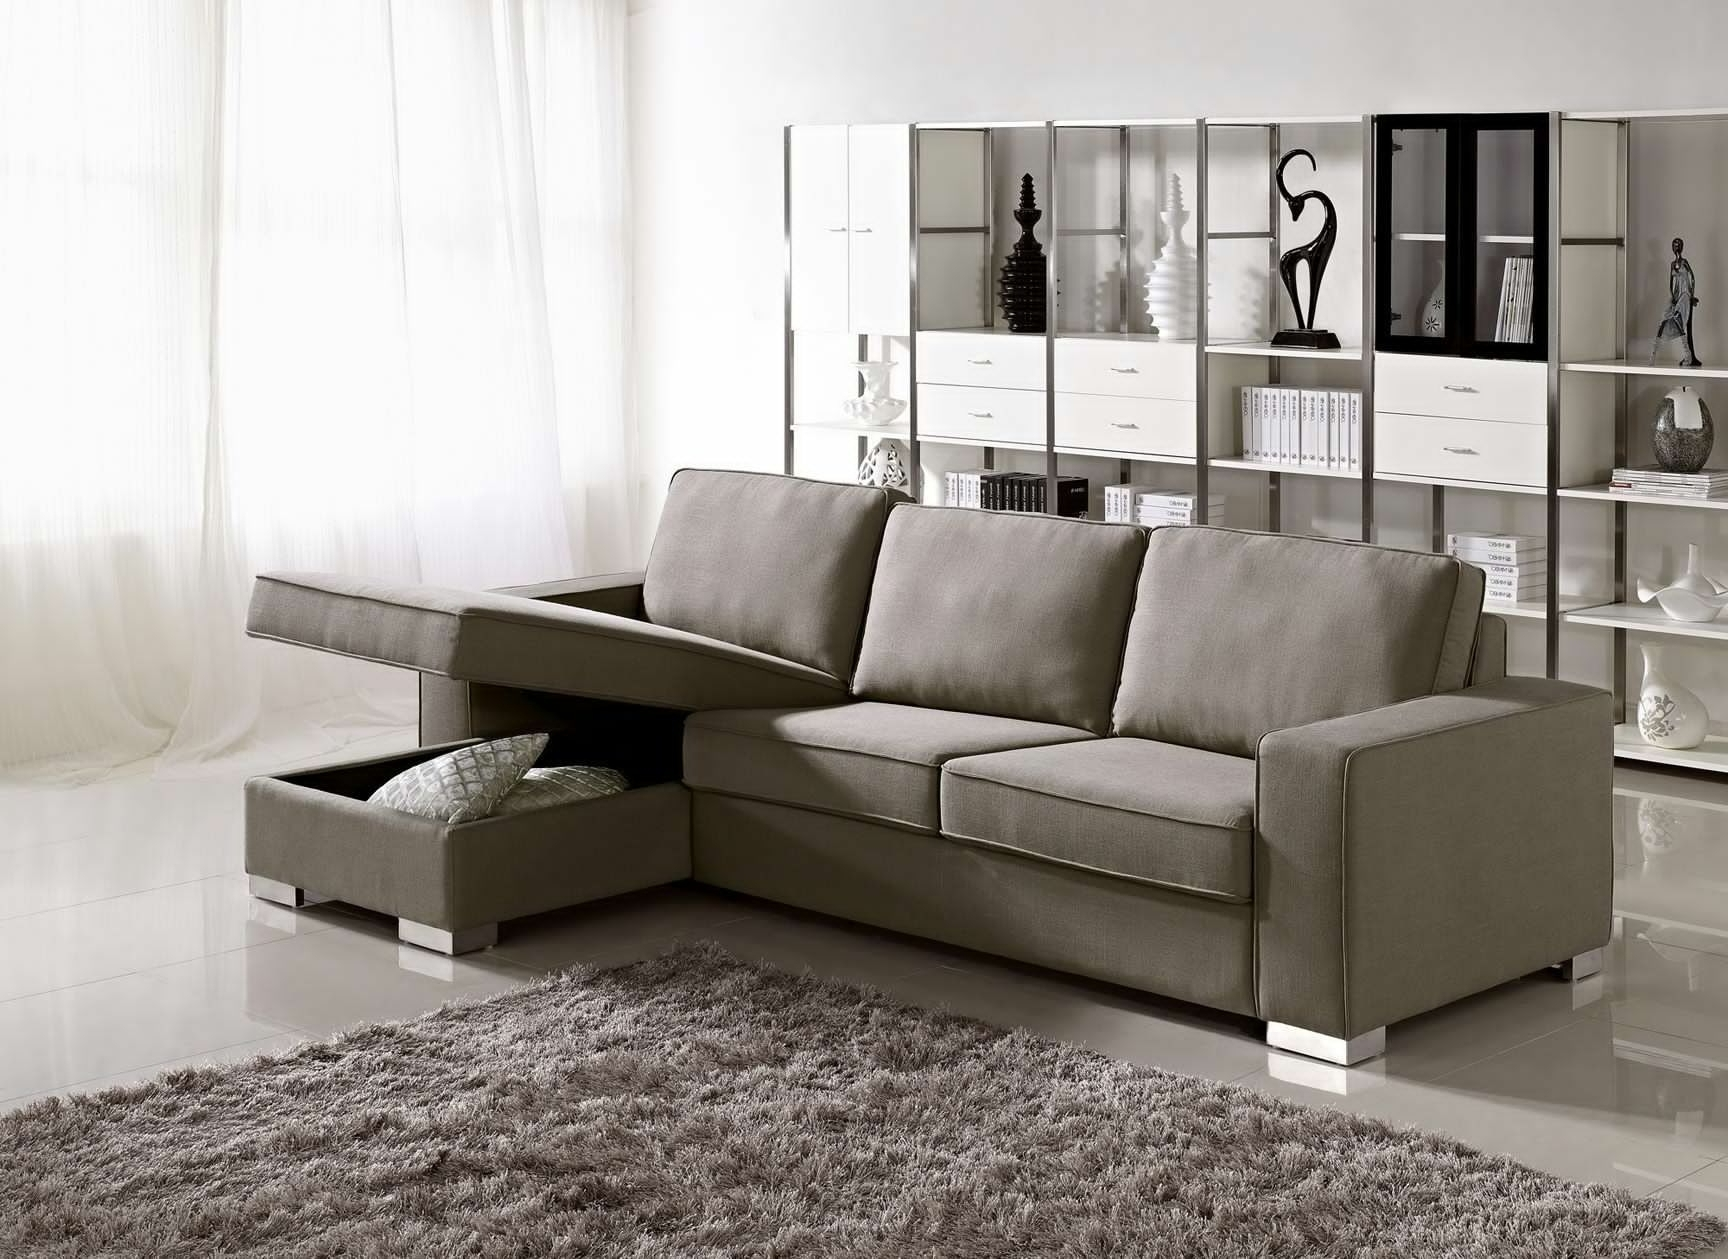 Most Recently Released Sectional Sofa Design: Apartment Size Sectional Sofas Set Sale In Apartment Size Sofas (View 15 of 20)